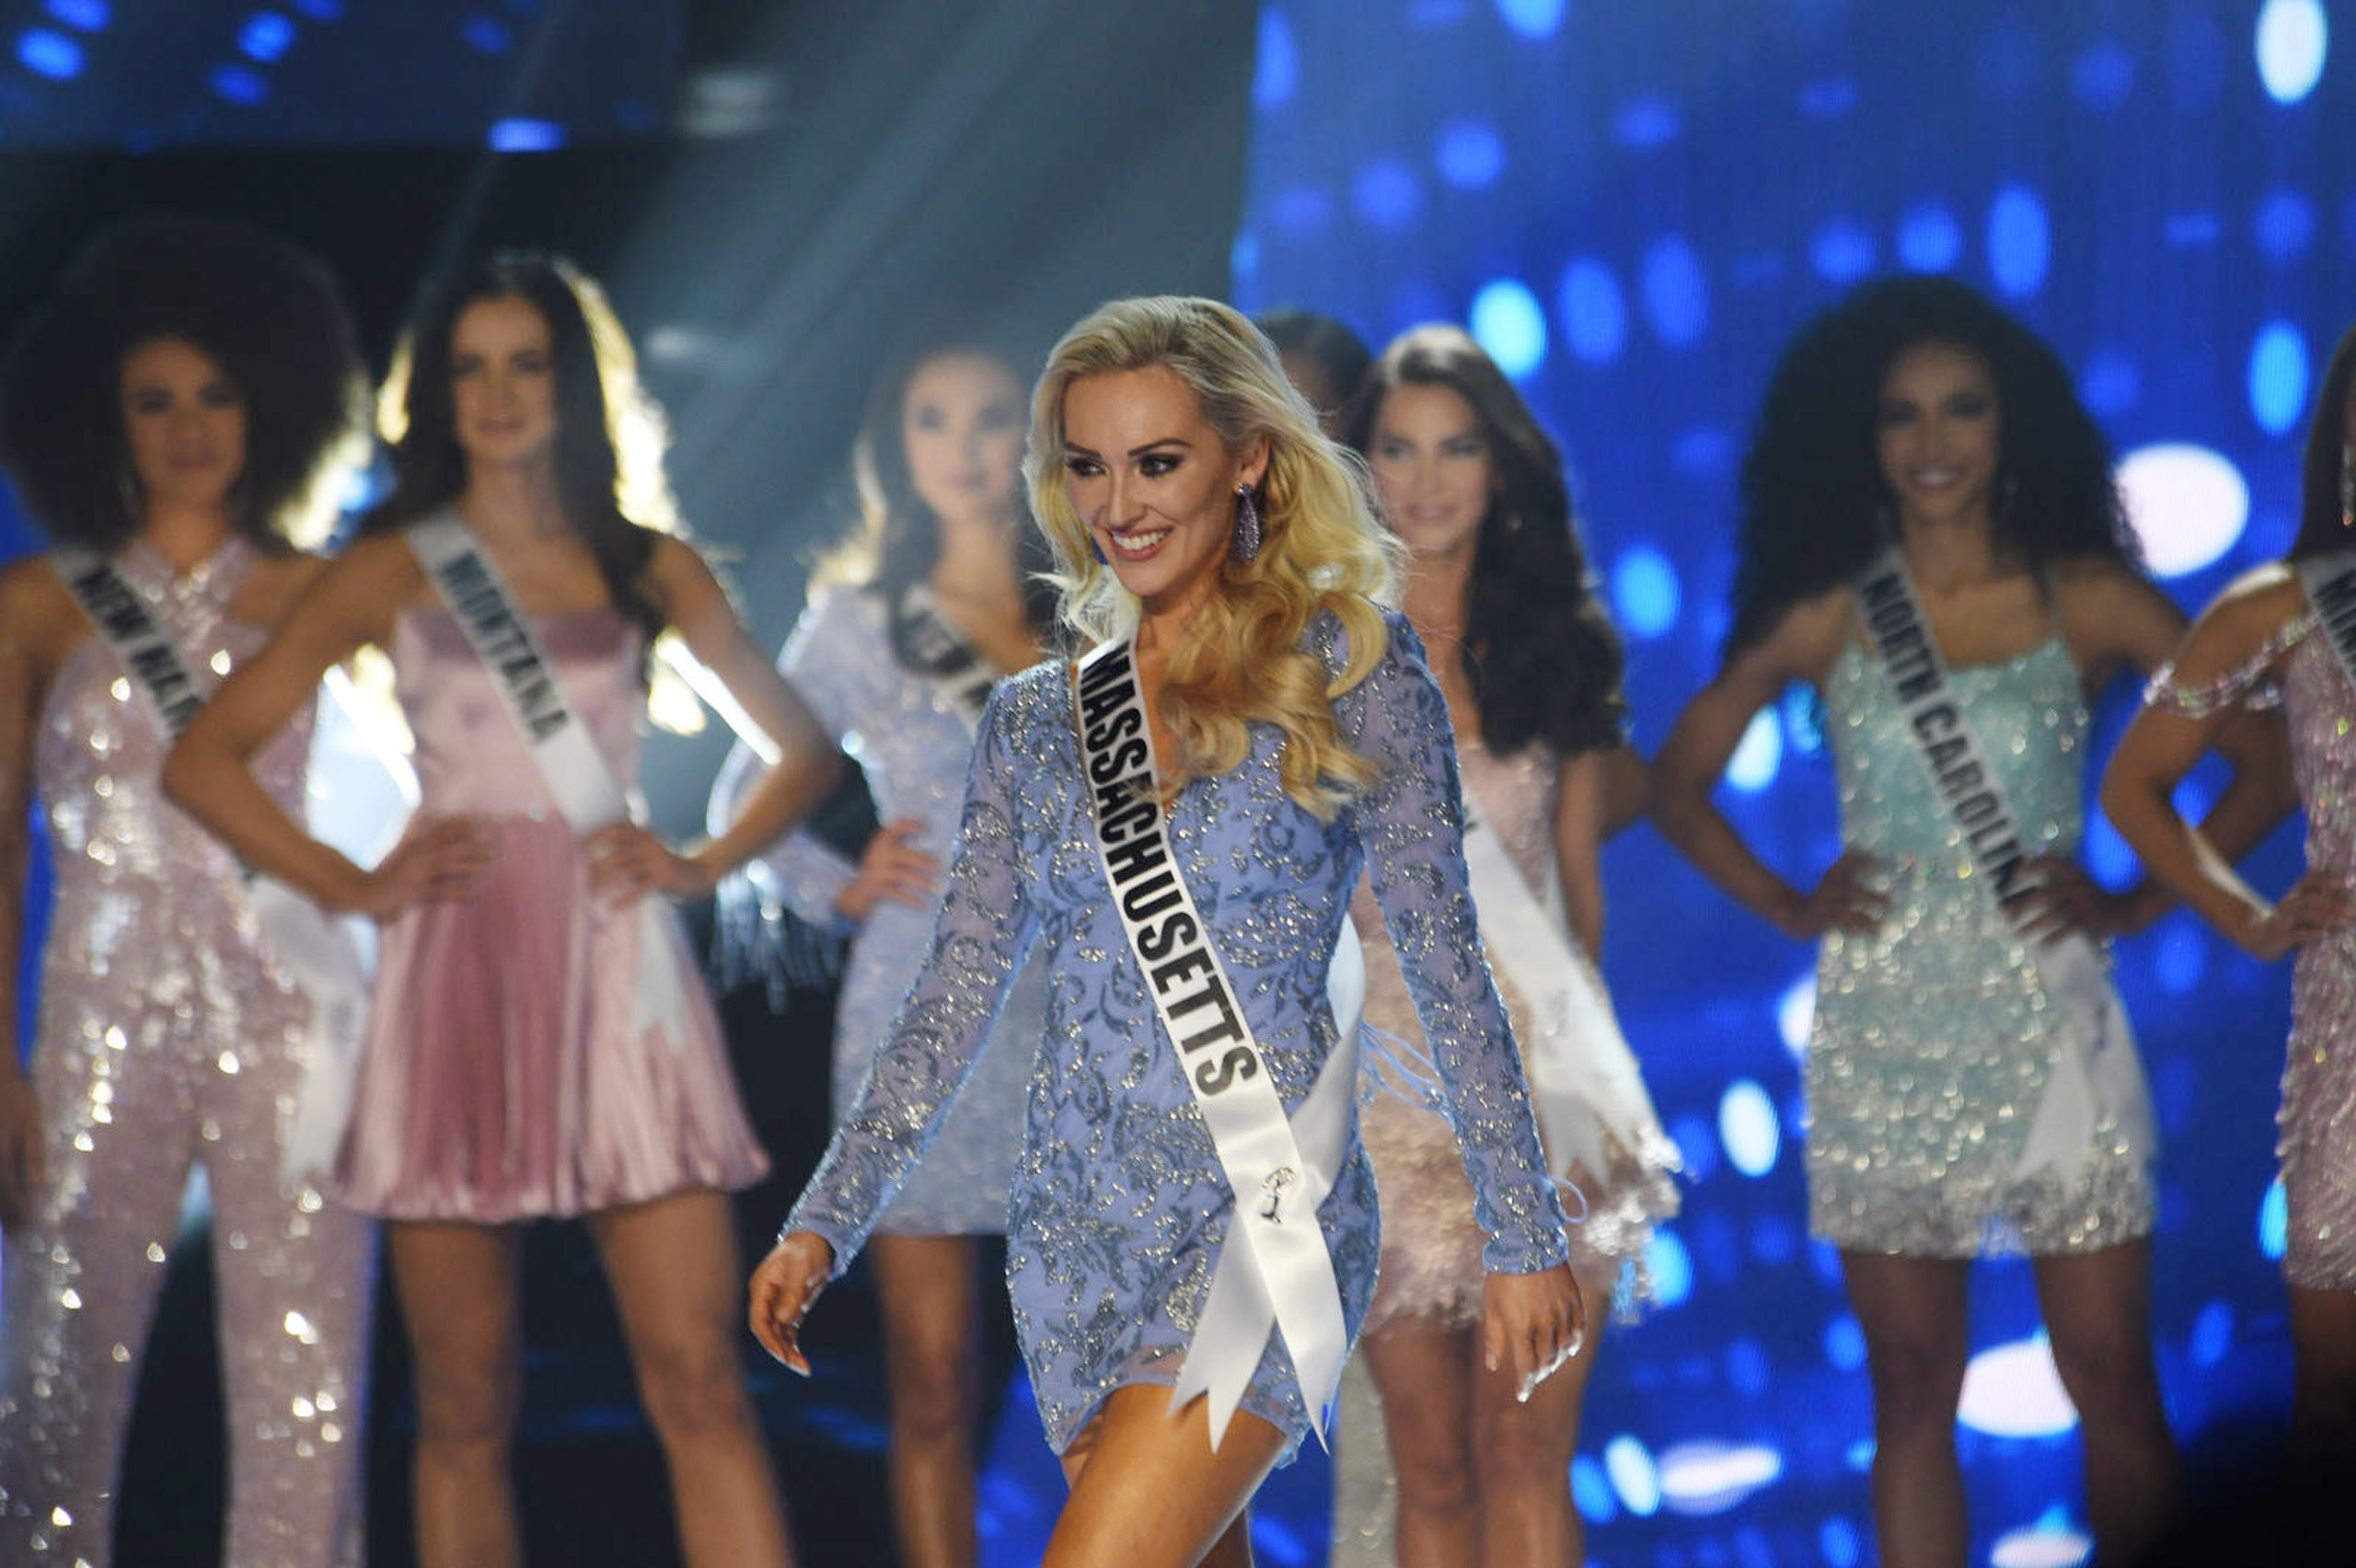 Miss Massachusetts Kelly O'Grady competes in Miss USA 2019.